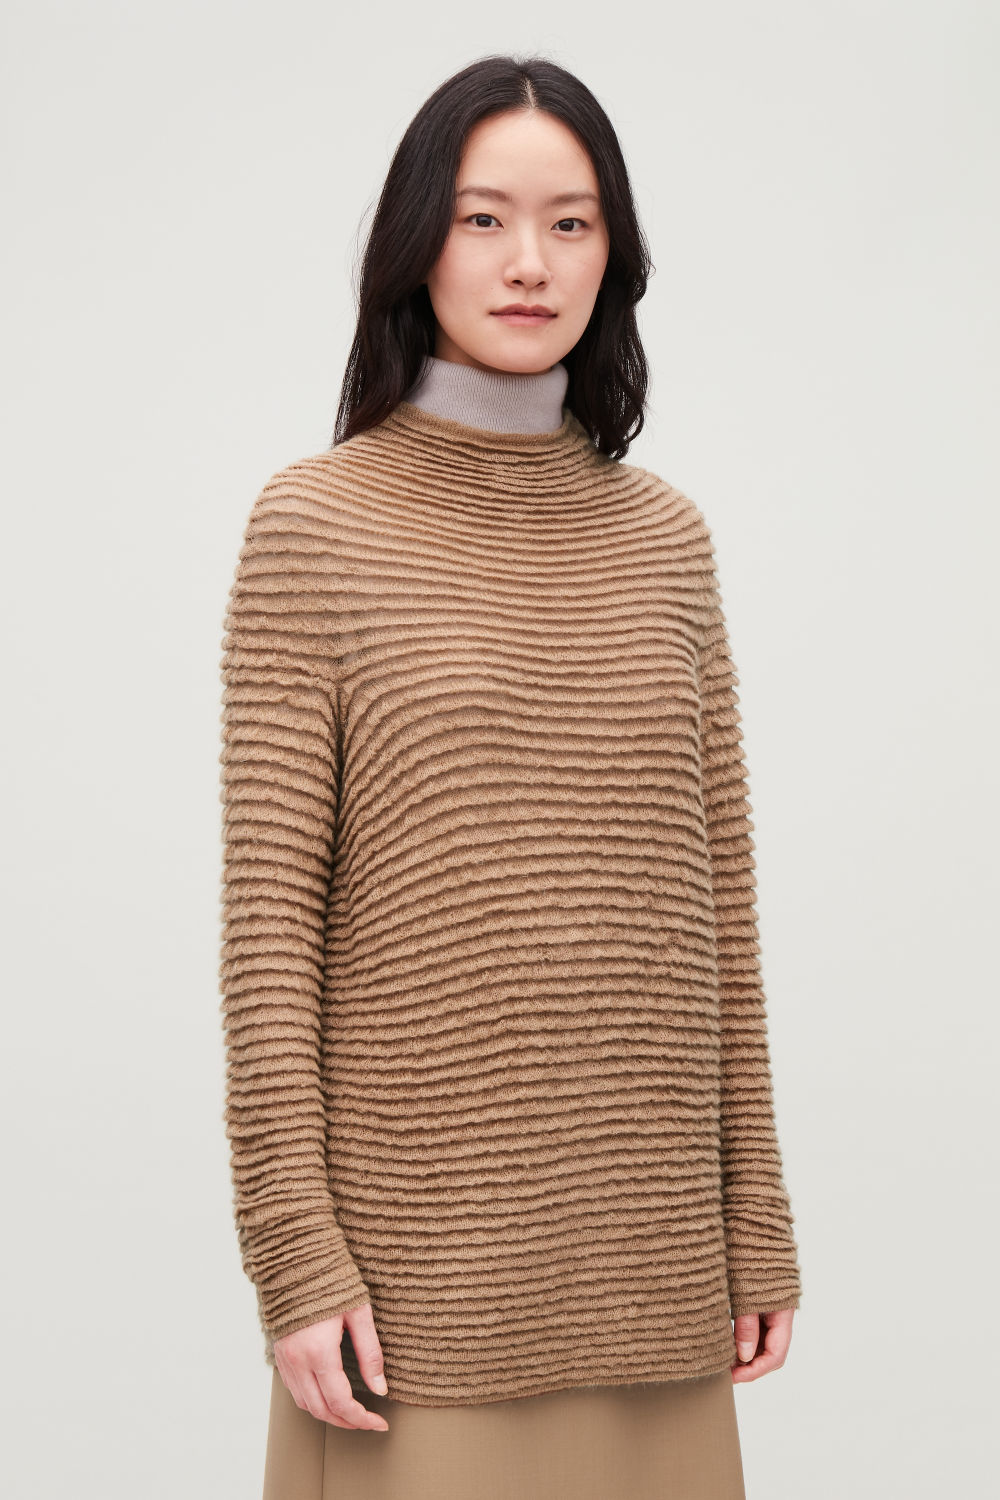 RIPPLE-STITCHED WOOL JUMPER